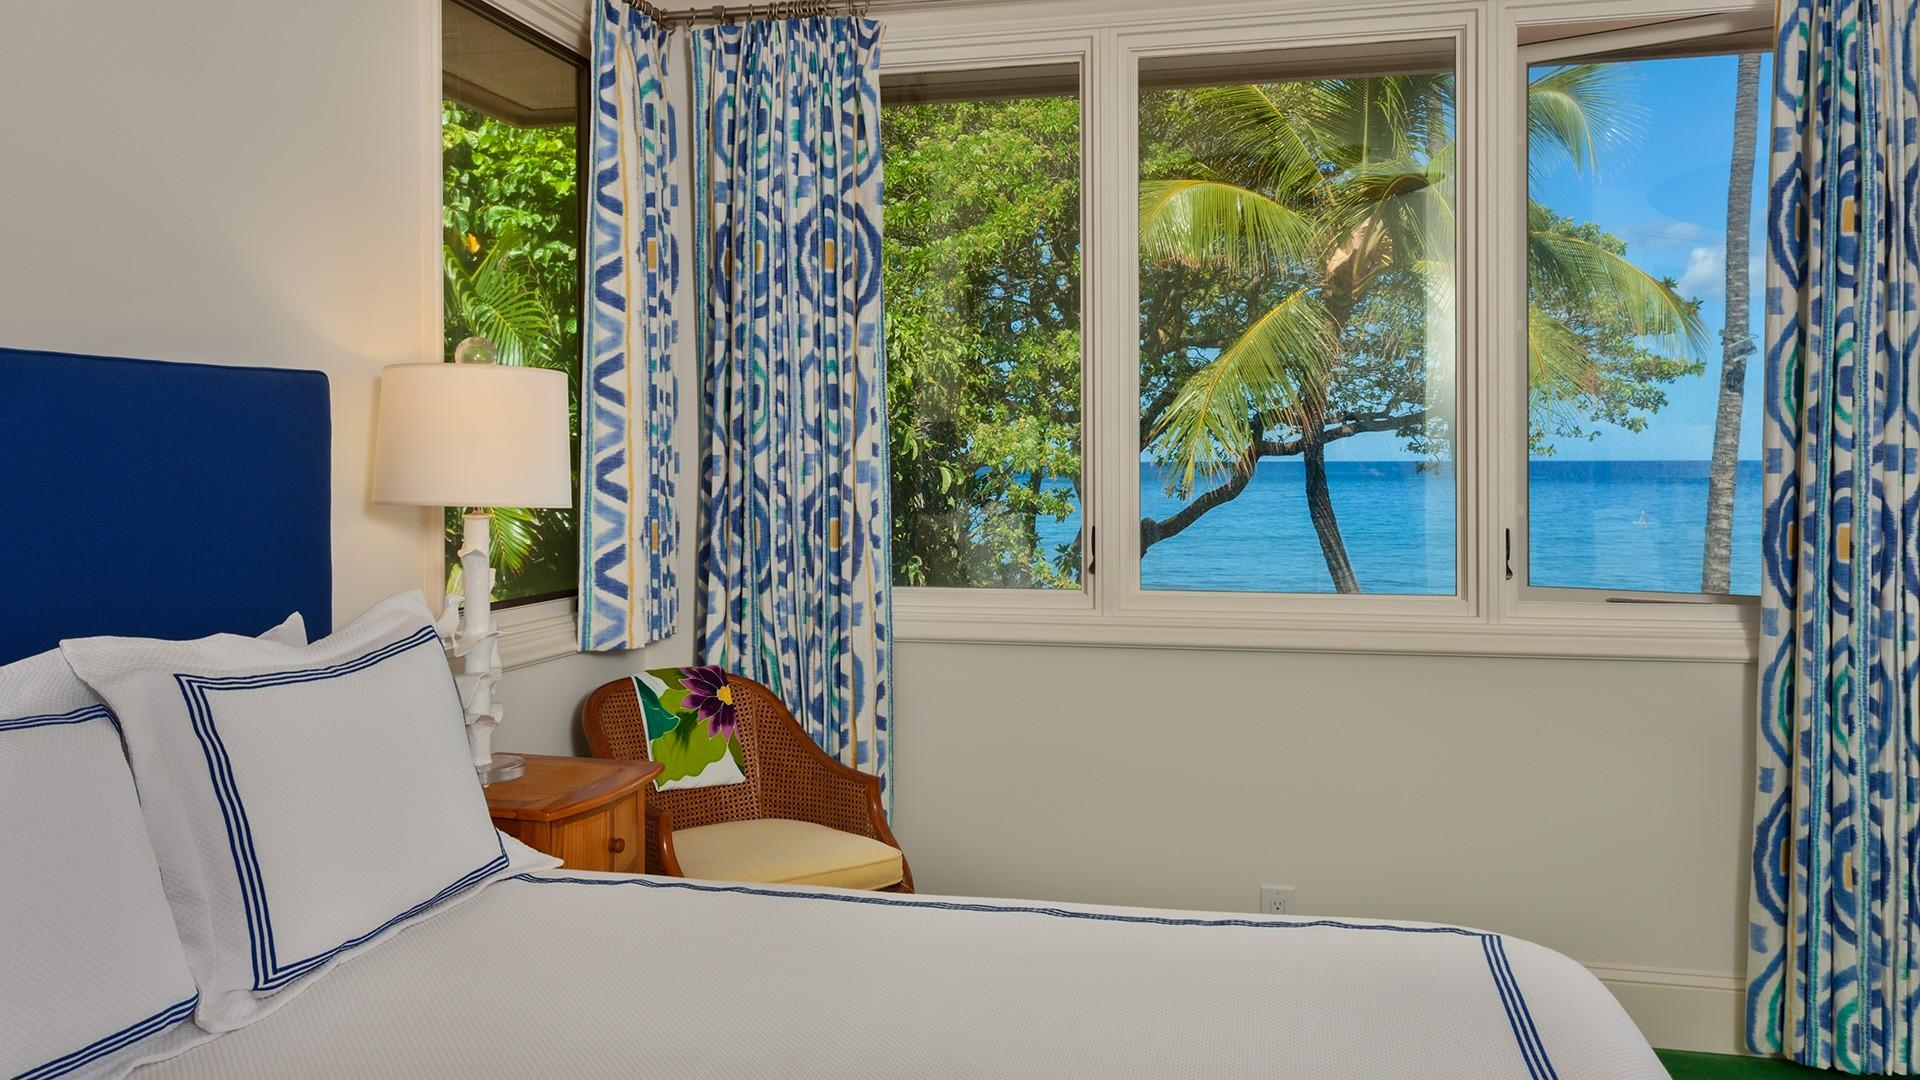 Wake up to a spectacular ocean view in the third bedroom, which is equipped with a queen-size bed and flat-screen television.